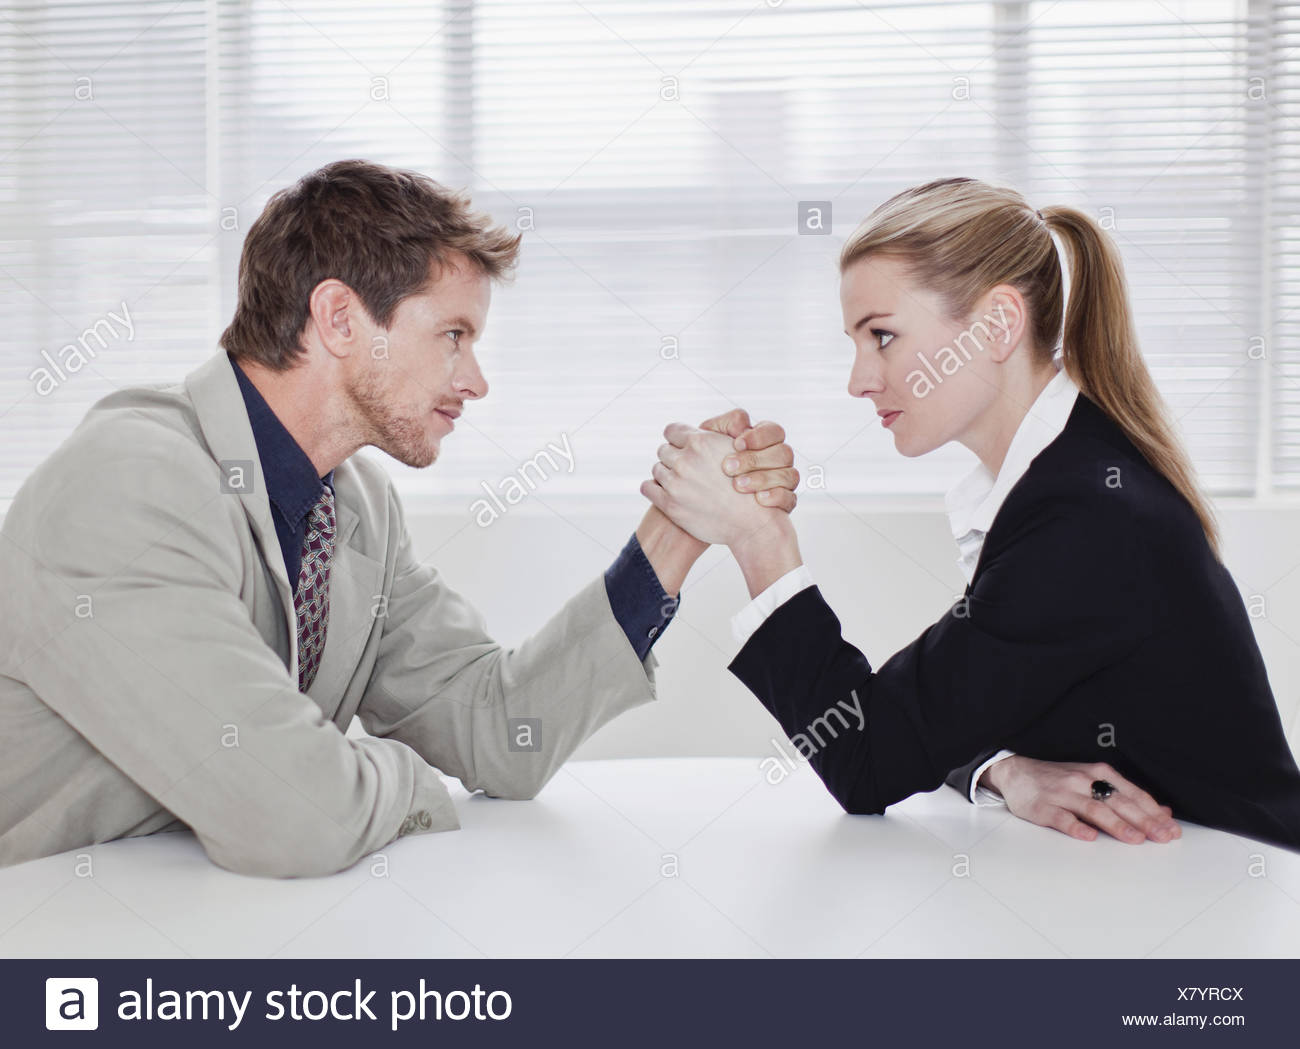 Rival business people arm wrestling - Stock Image